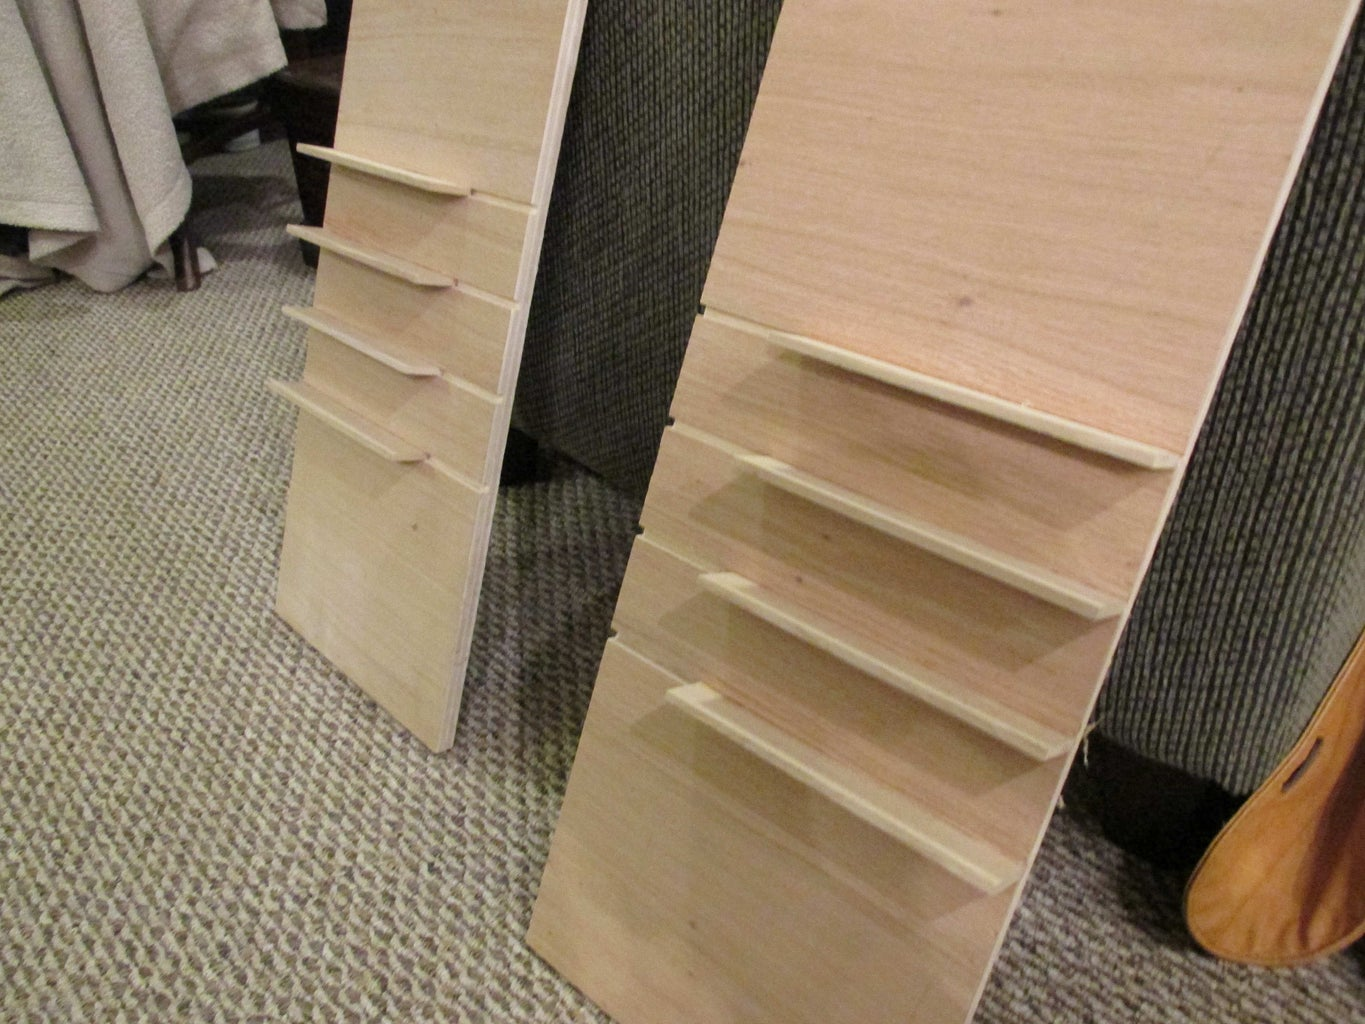 Glue in Slats for Drawers